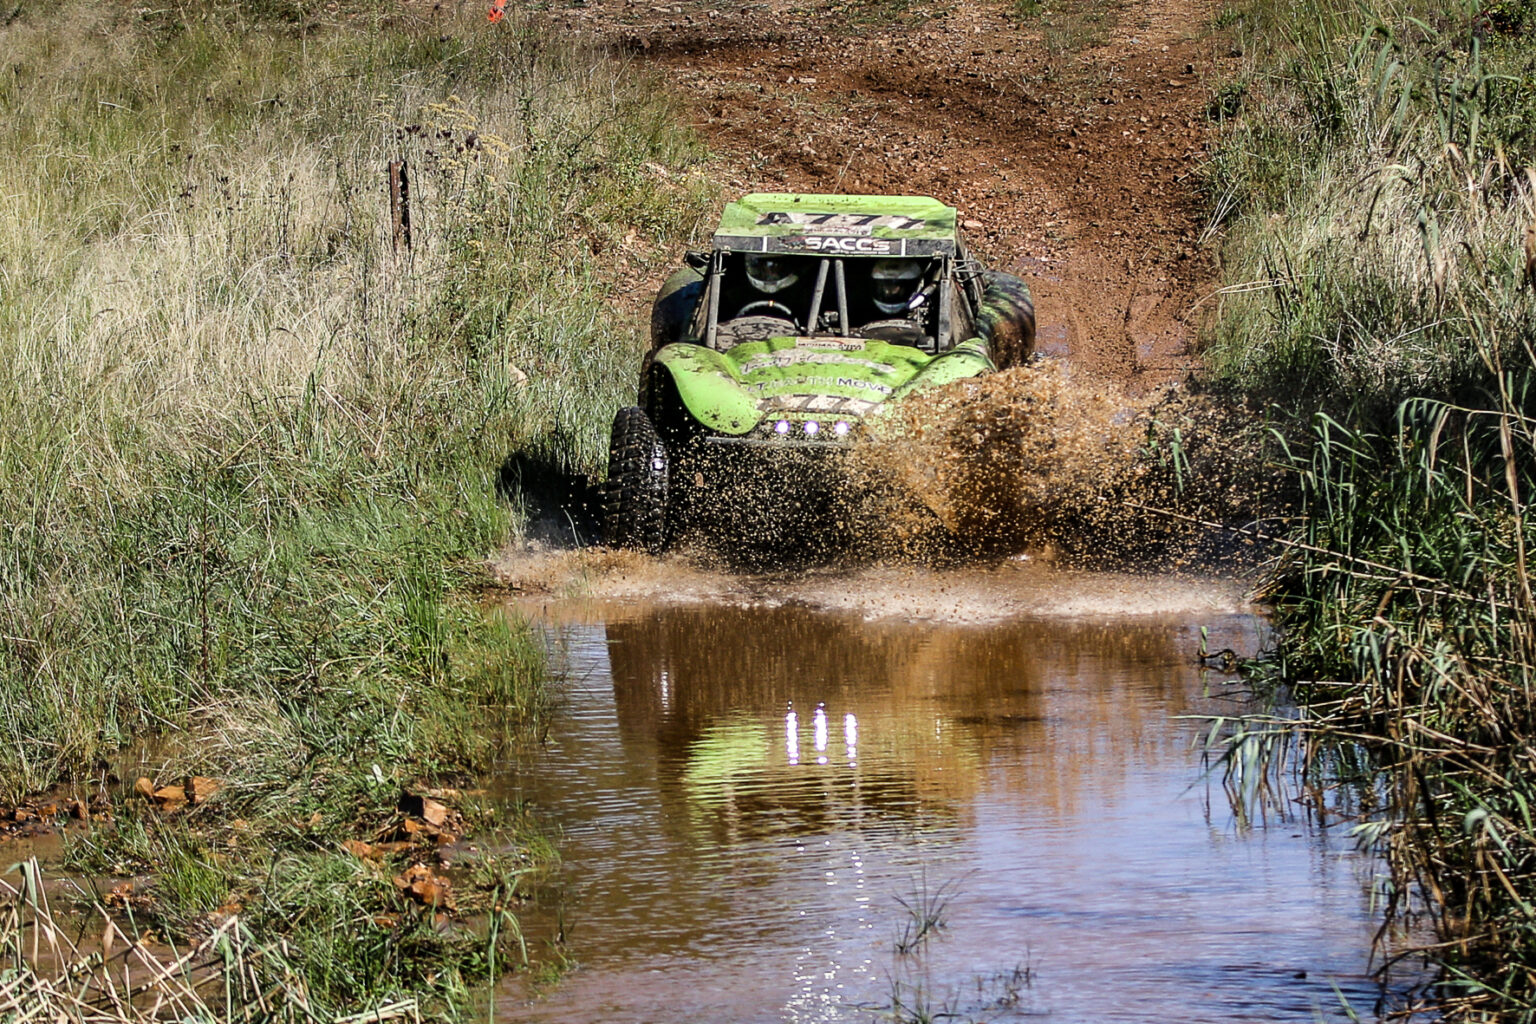 Former champions win as tough Mpumalanga 400 took its toll on the special vehicles